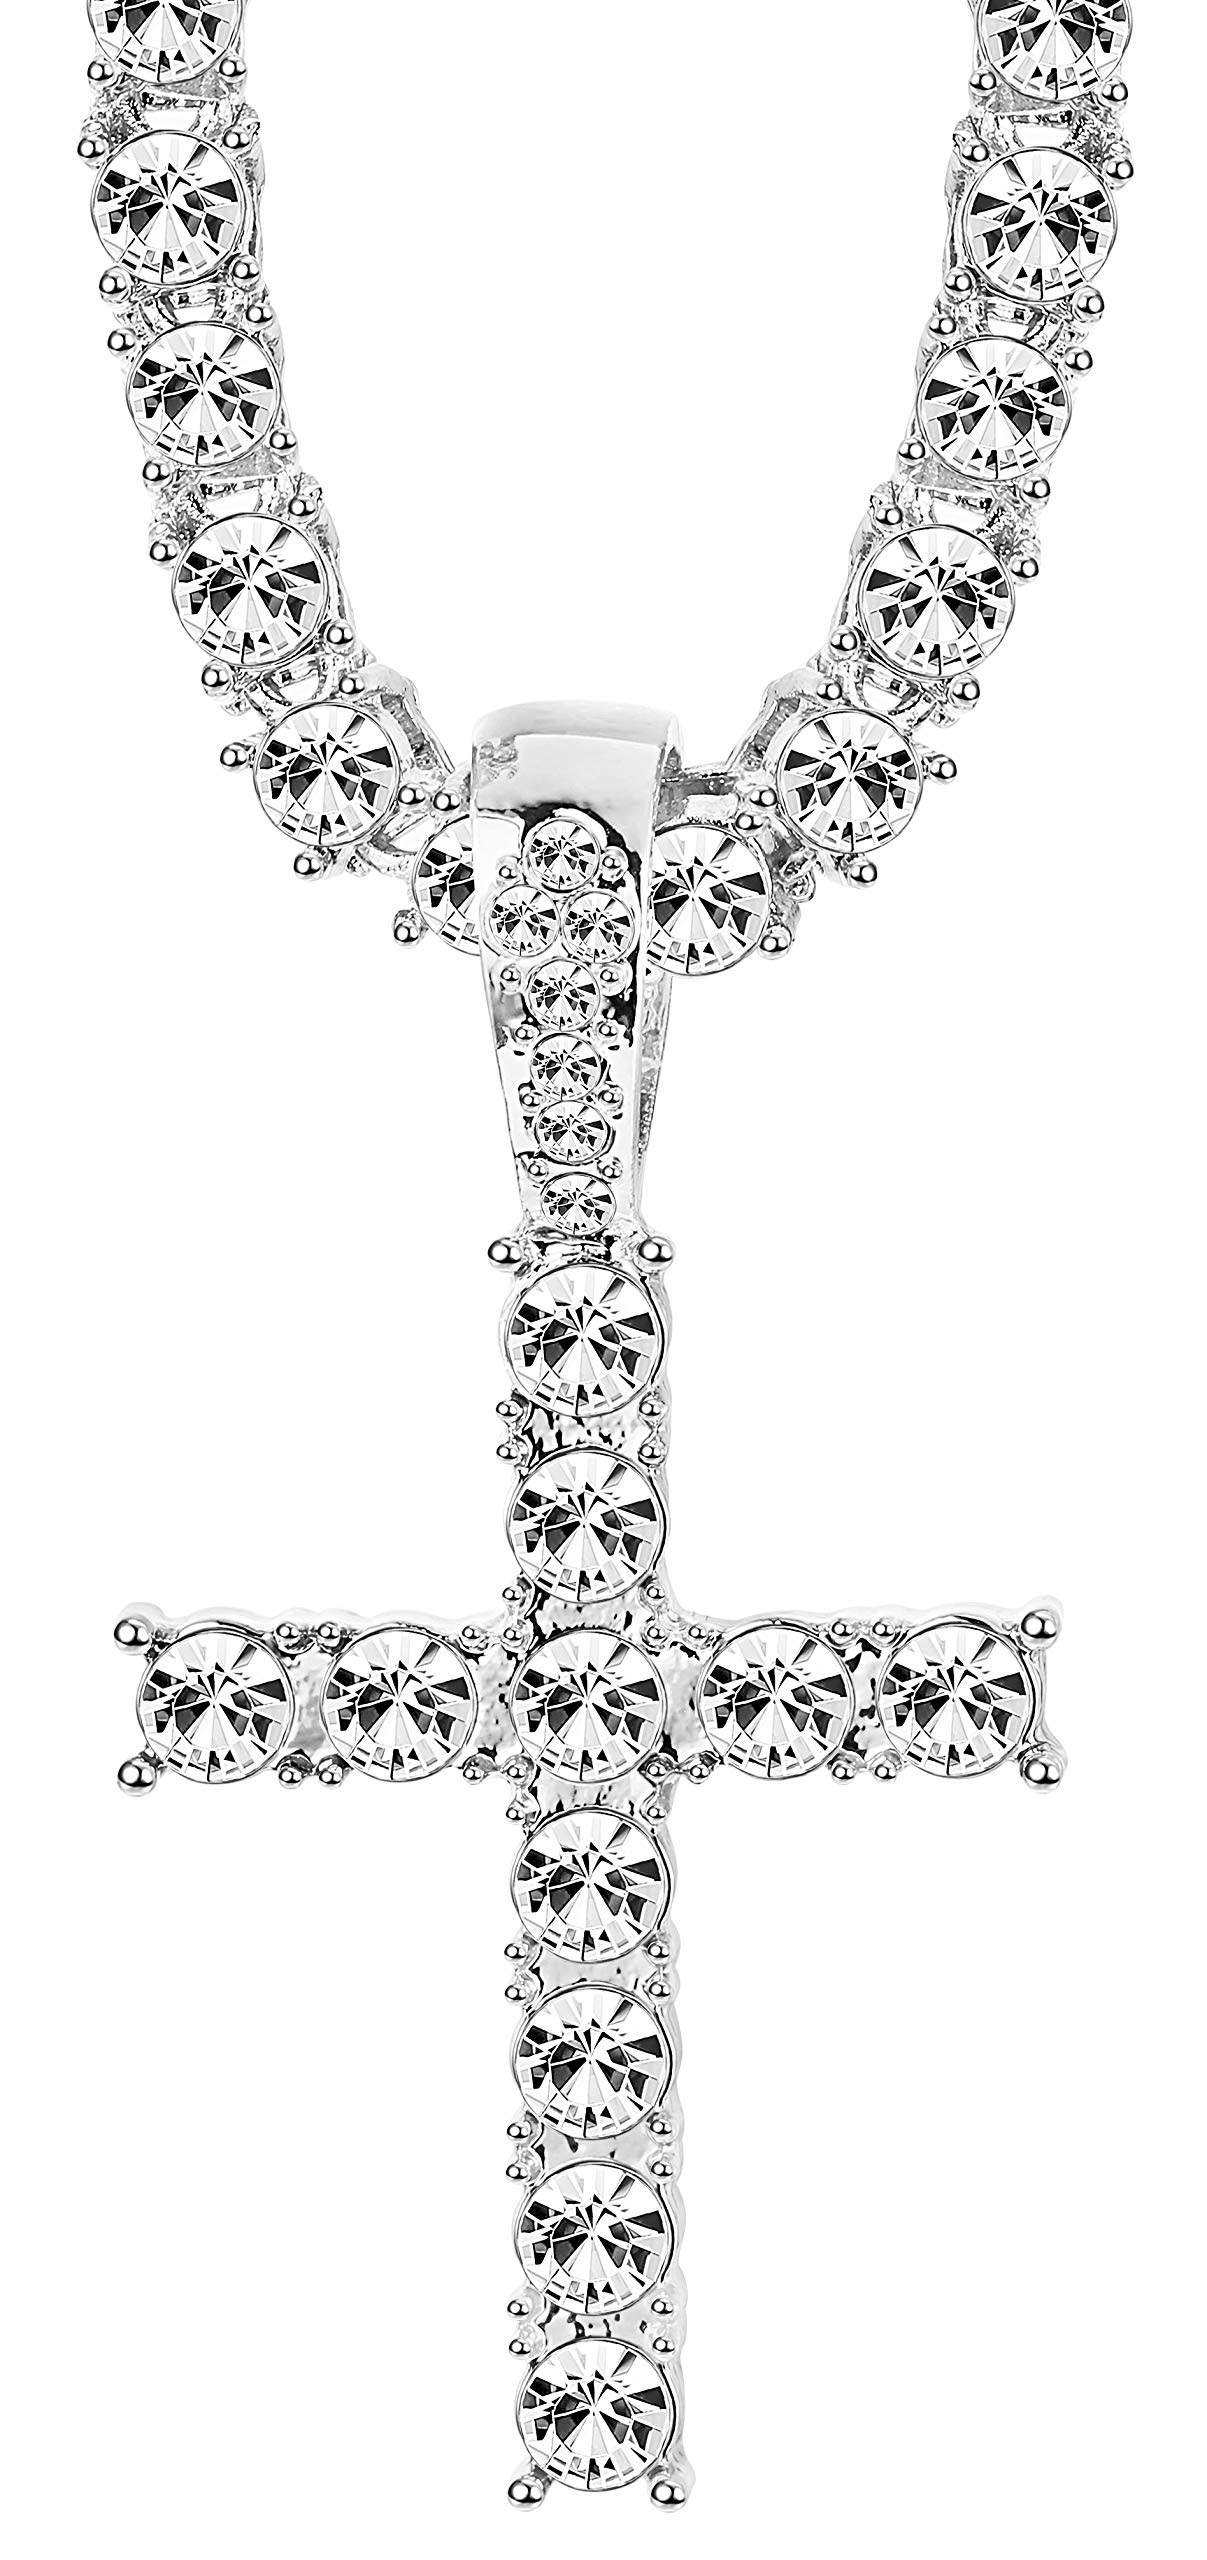 LOYALLOOK Iced Out Chains for Men 18K Plated Necklace Hip Pop Chain Cross Pendant Tennis Chain Silver 22''